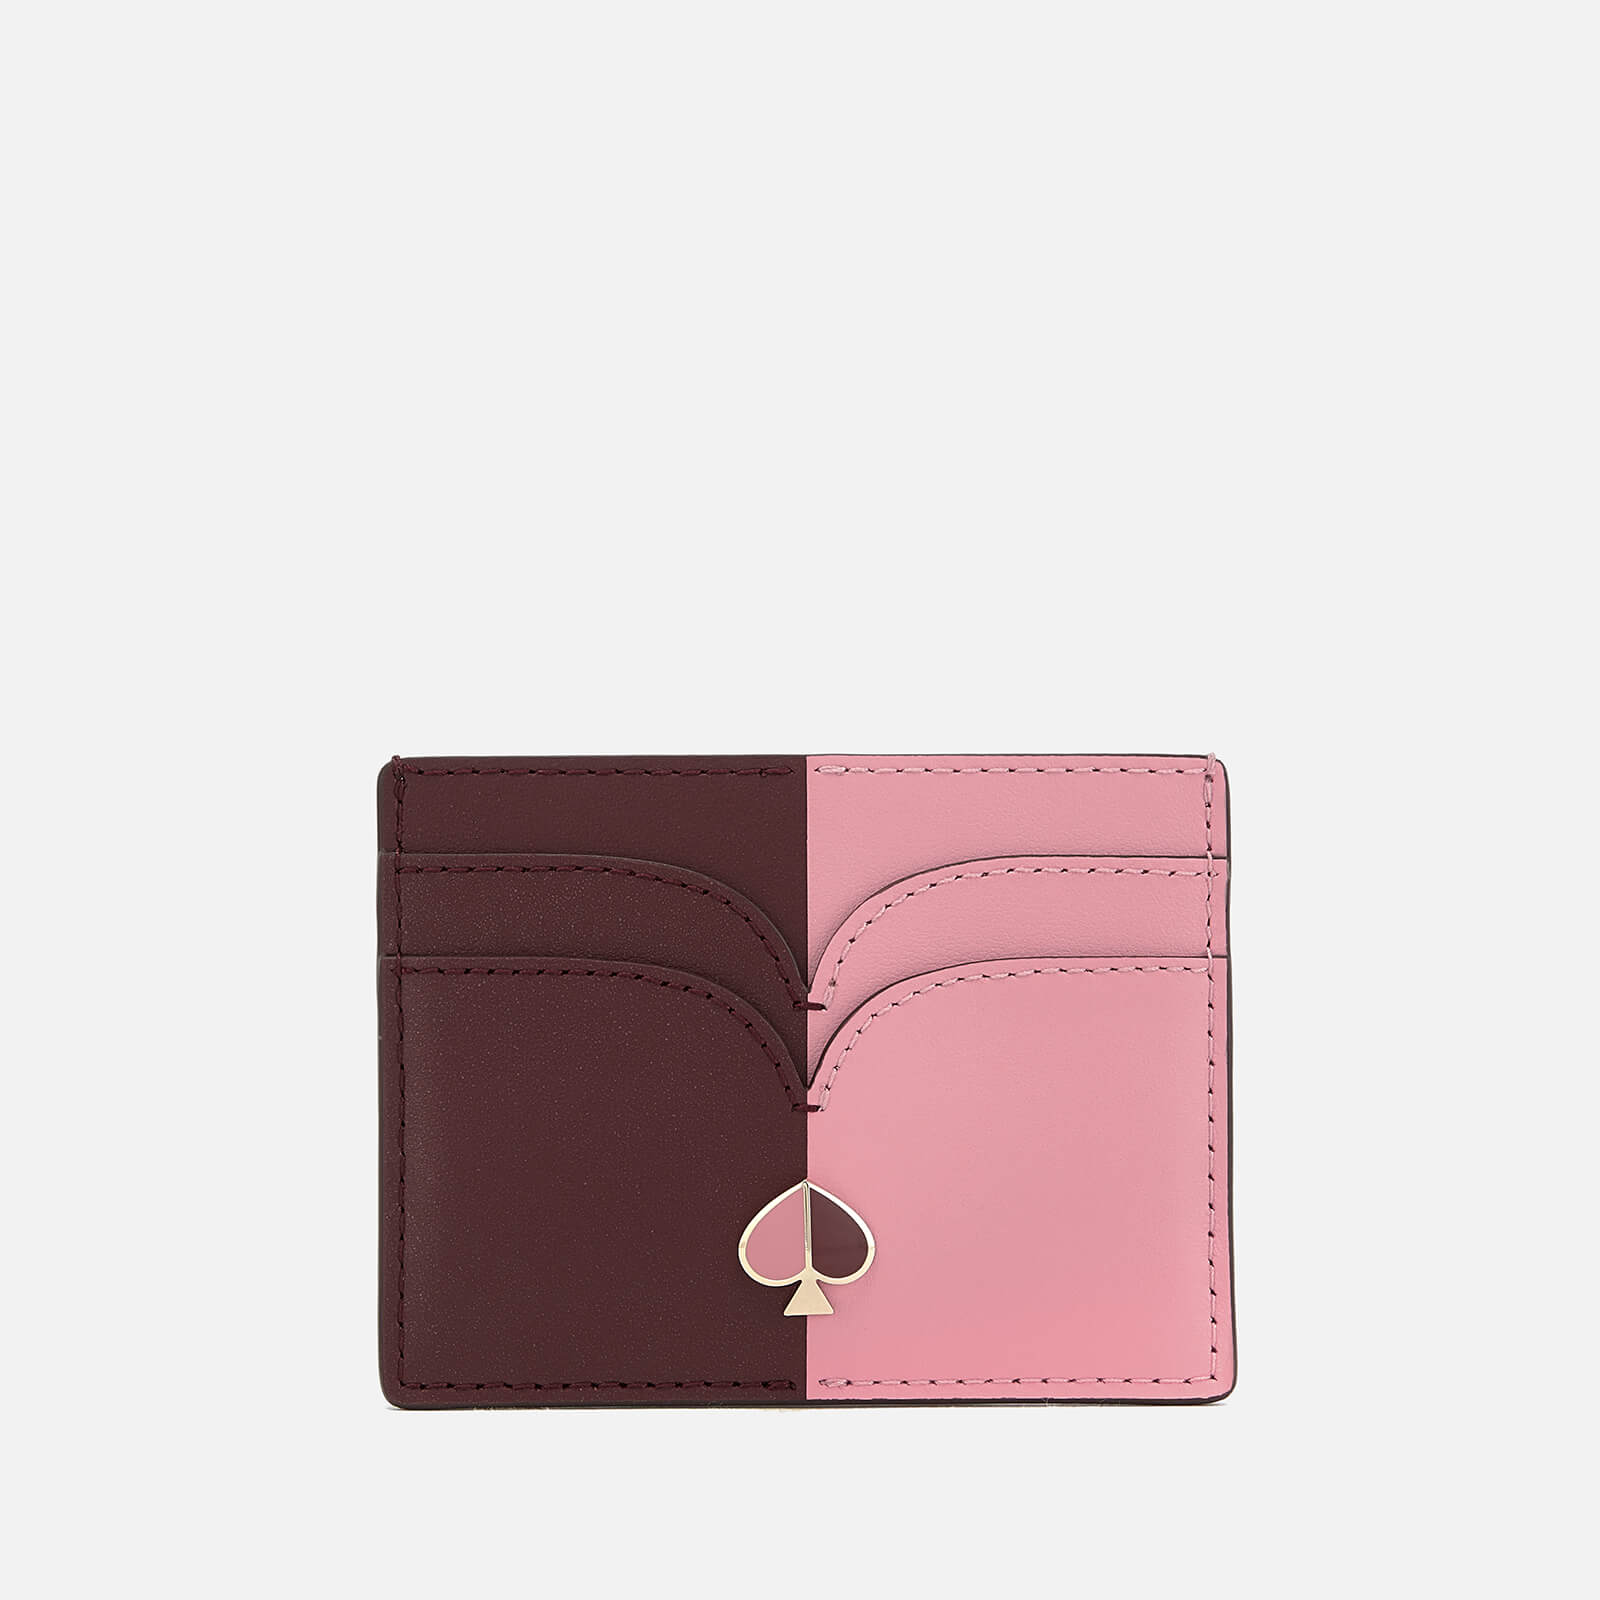 Kate Spade New York Women's Nicola Bi Colour Card Holder - Roasted Fig/Rococo Pink 原價75英鎊 優惠價53